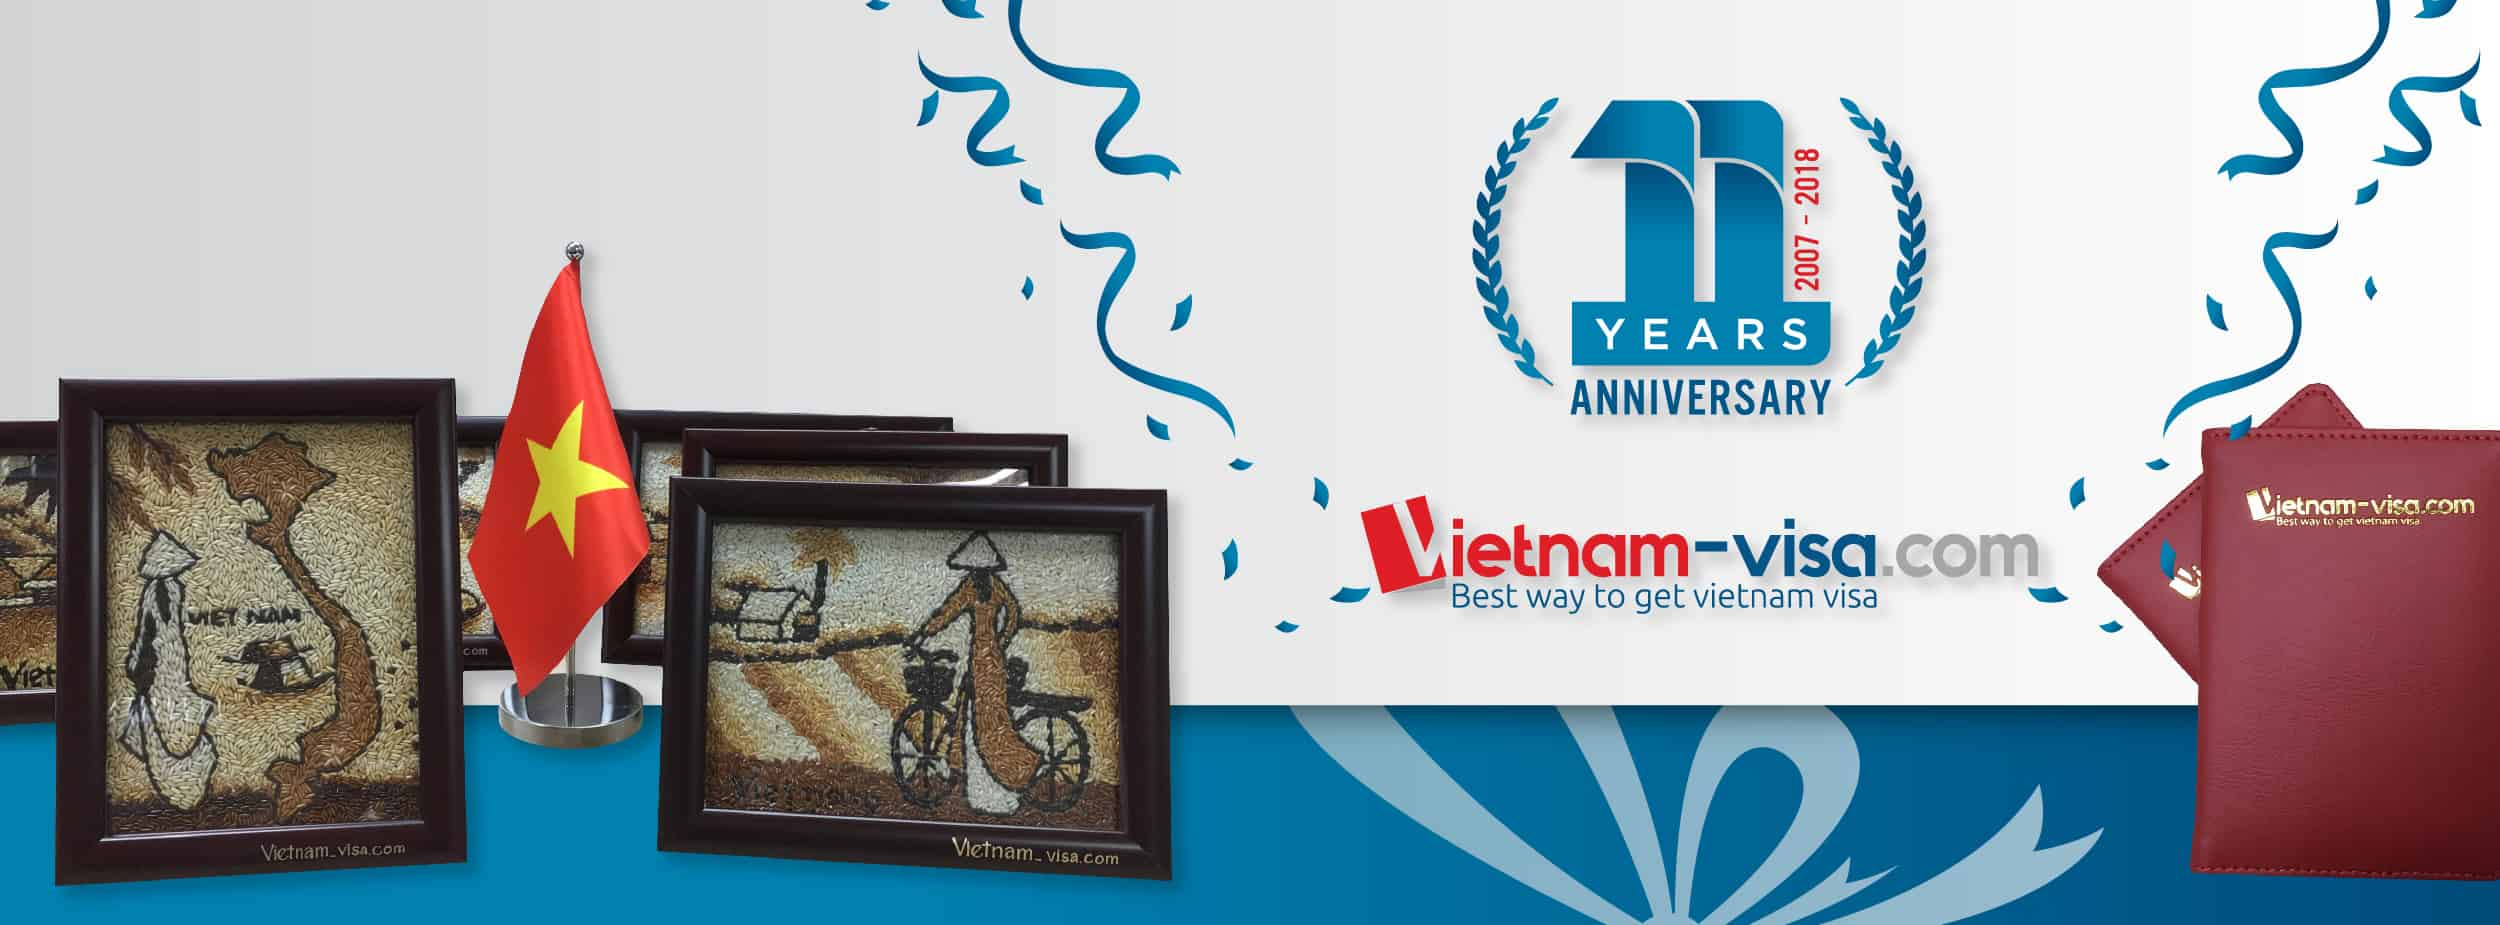 Special offers for 11th anniversary of Vietnam-visa establishment